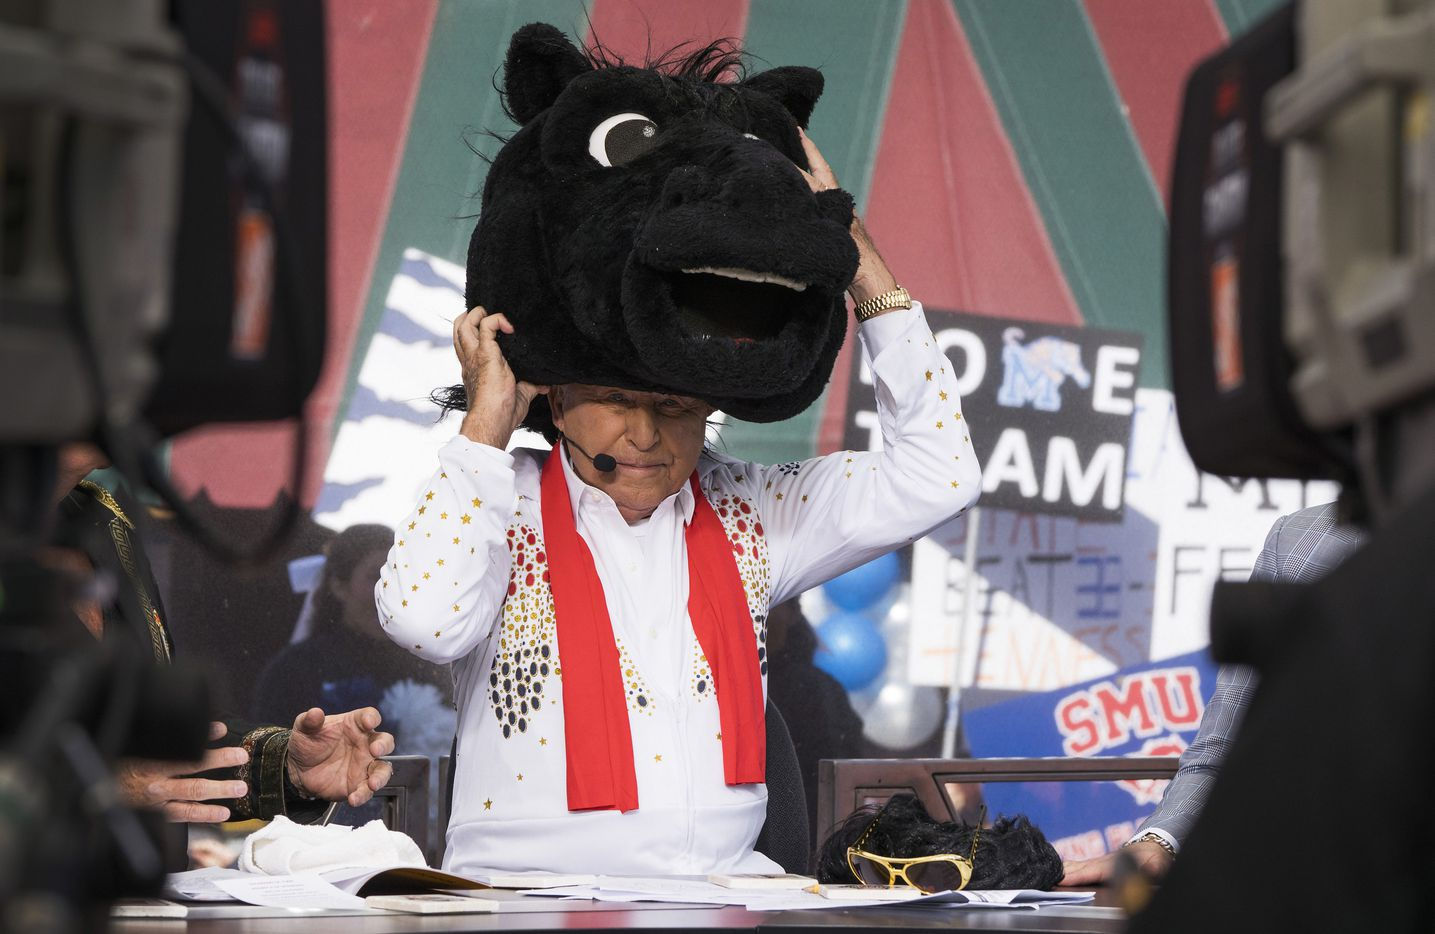 Lee Corso dons the headgear of SMU mascot Peruna as he picks the Mustangs for victory over Memphis during ESPN College GameDay on Saturday, Nov. 2, 2019, in Memphis, Tenn.